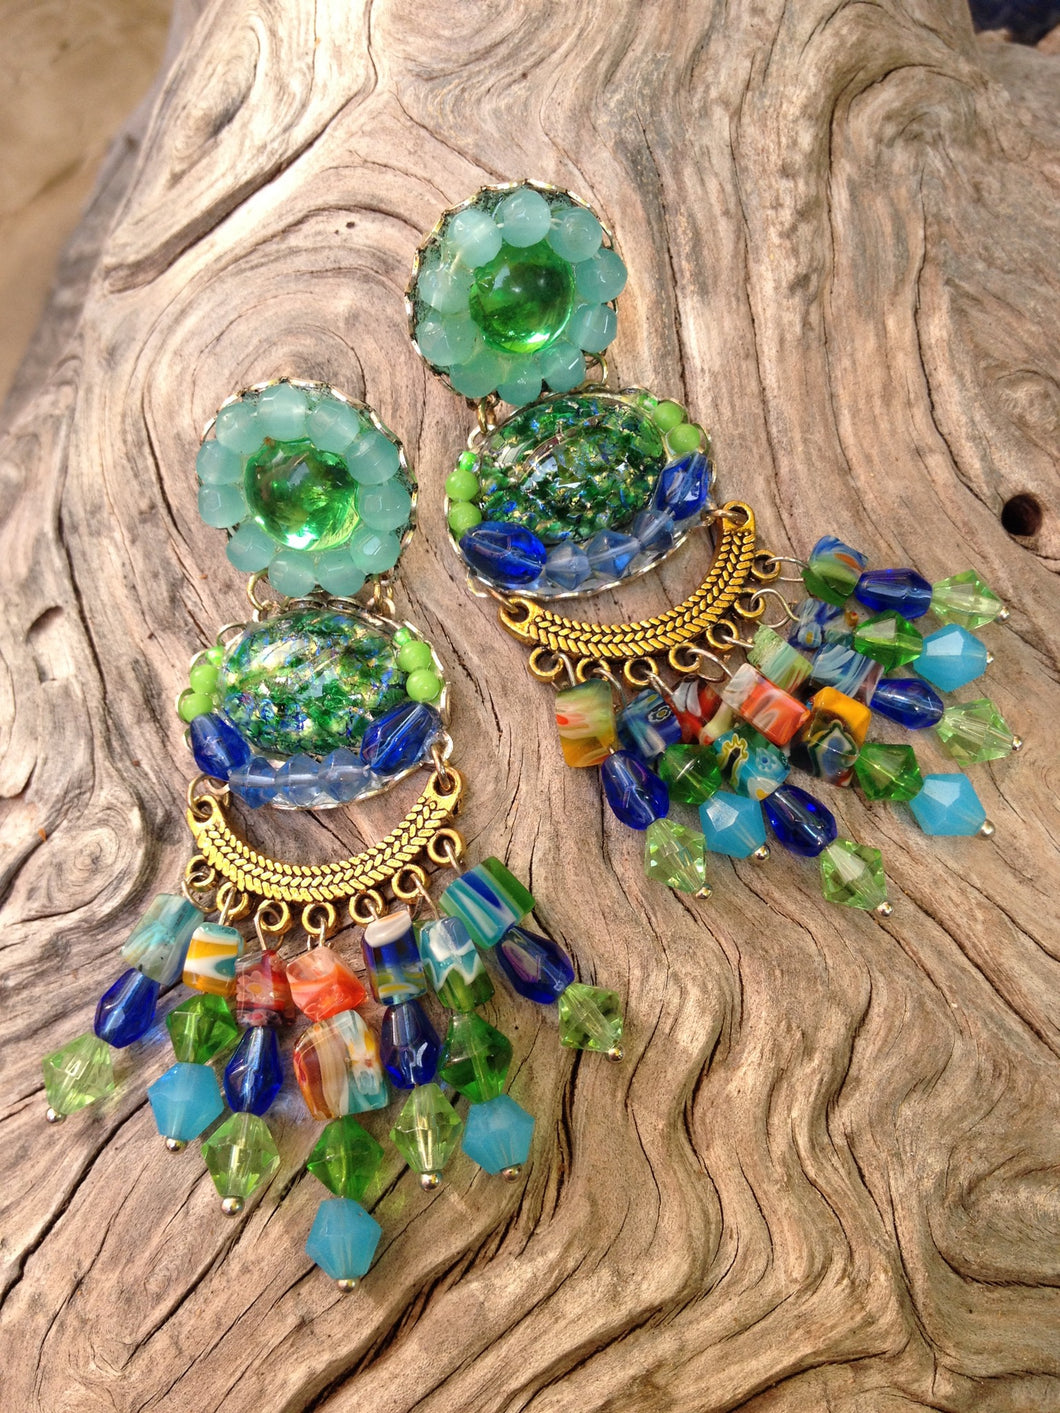 Green and Blue with Millefiore Chandelier Earrings by Amanda Martinson Earrings {{ crystalmagicdesigns }}